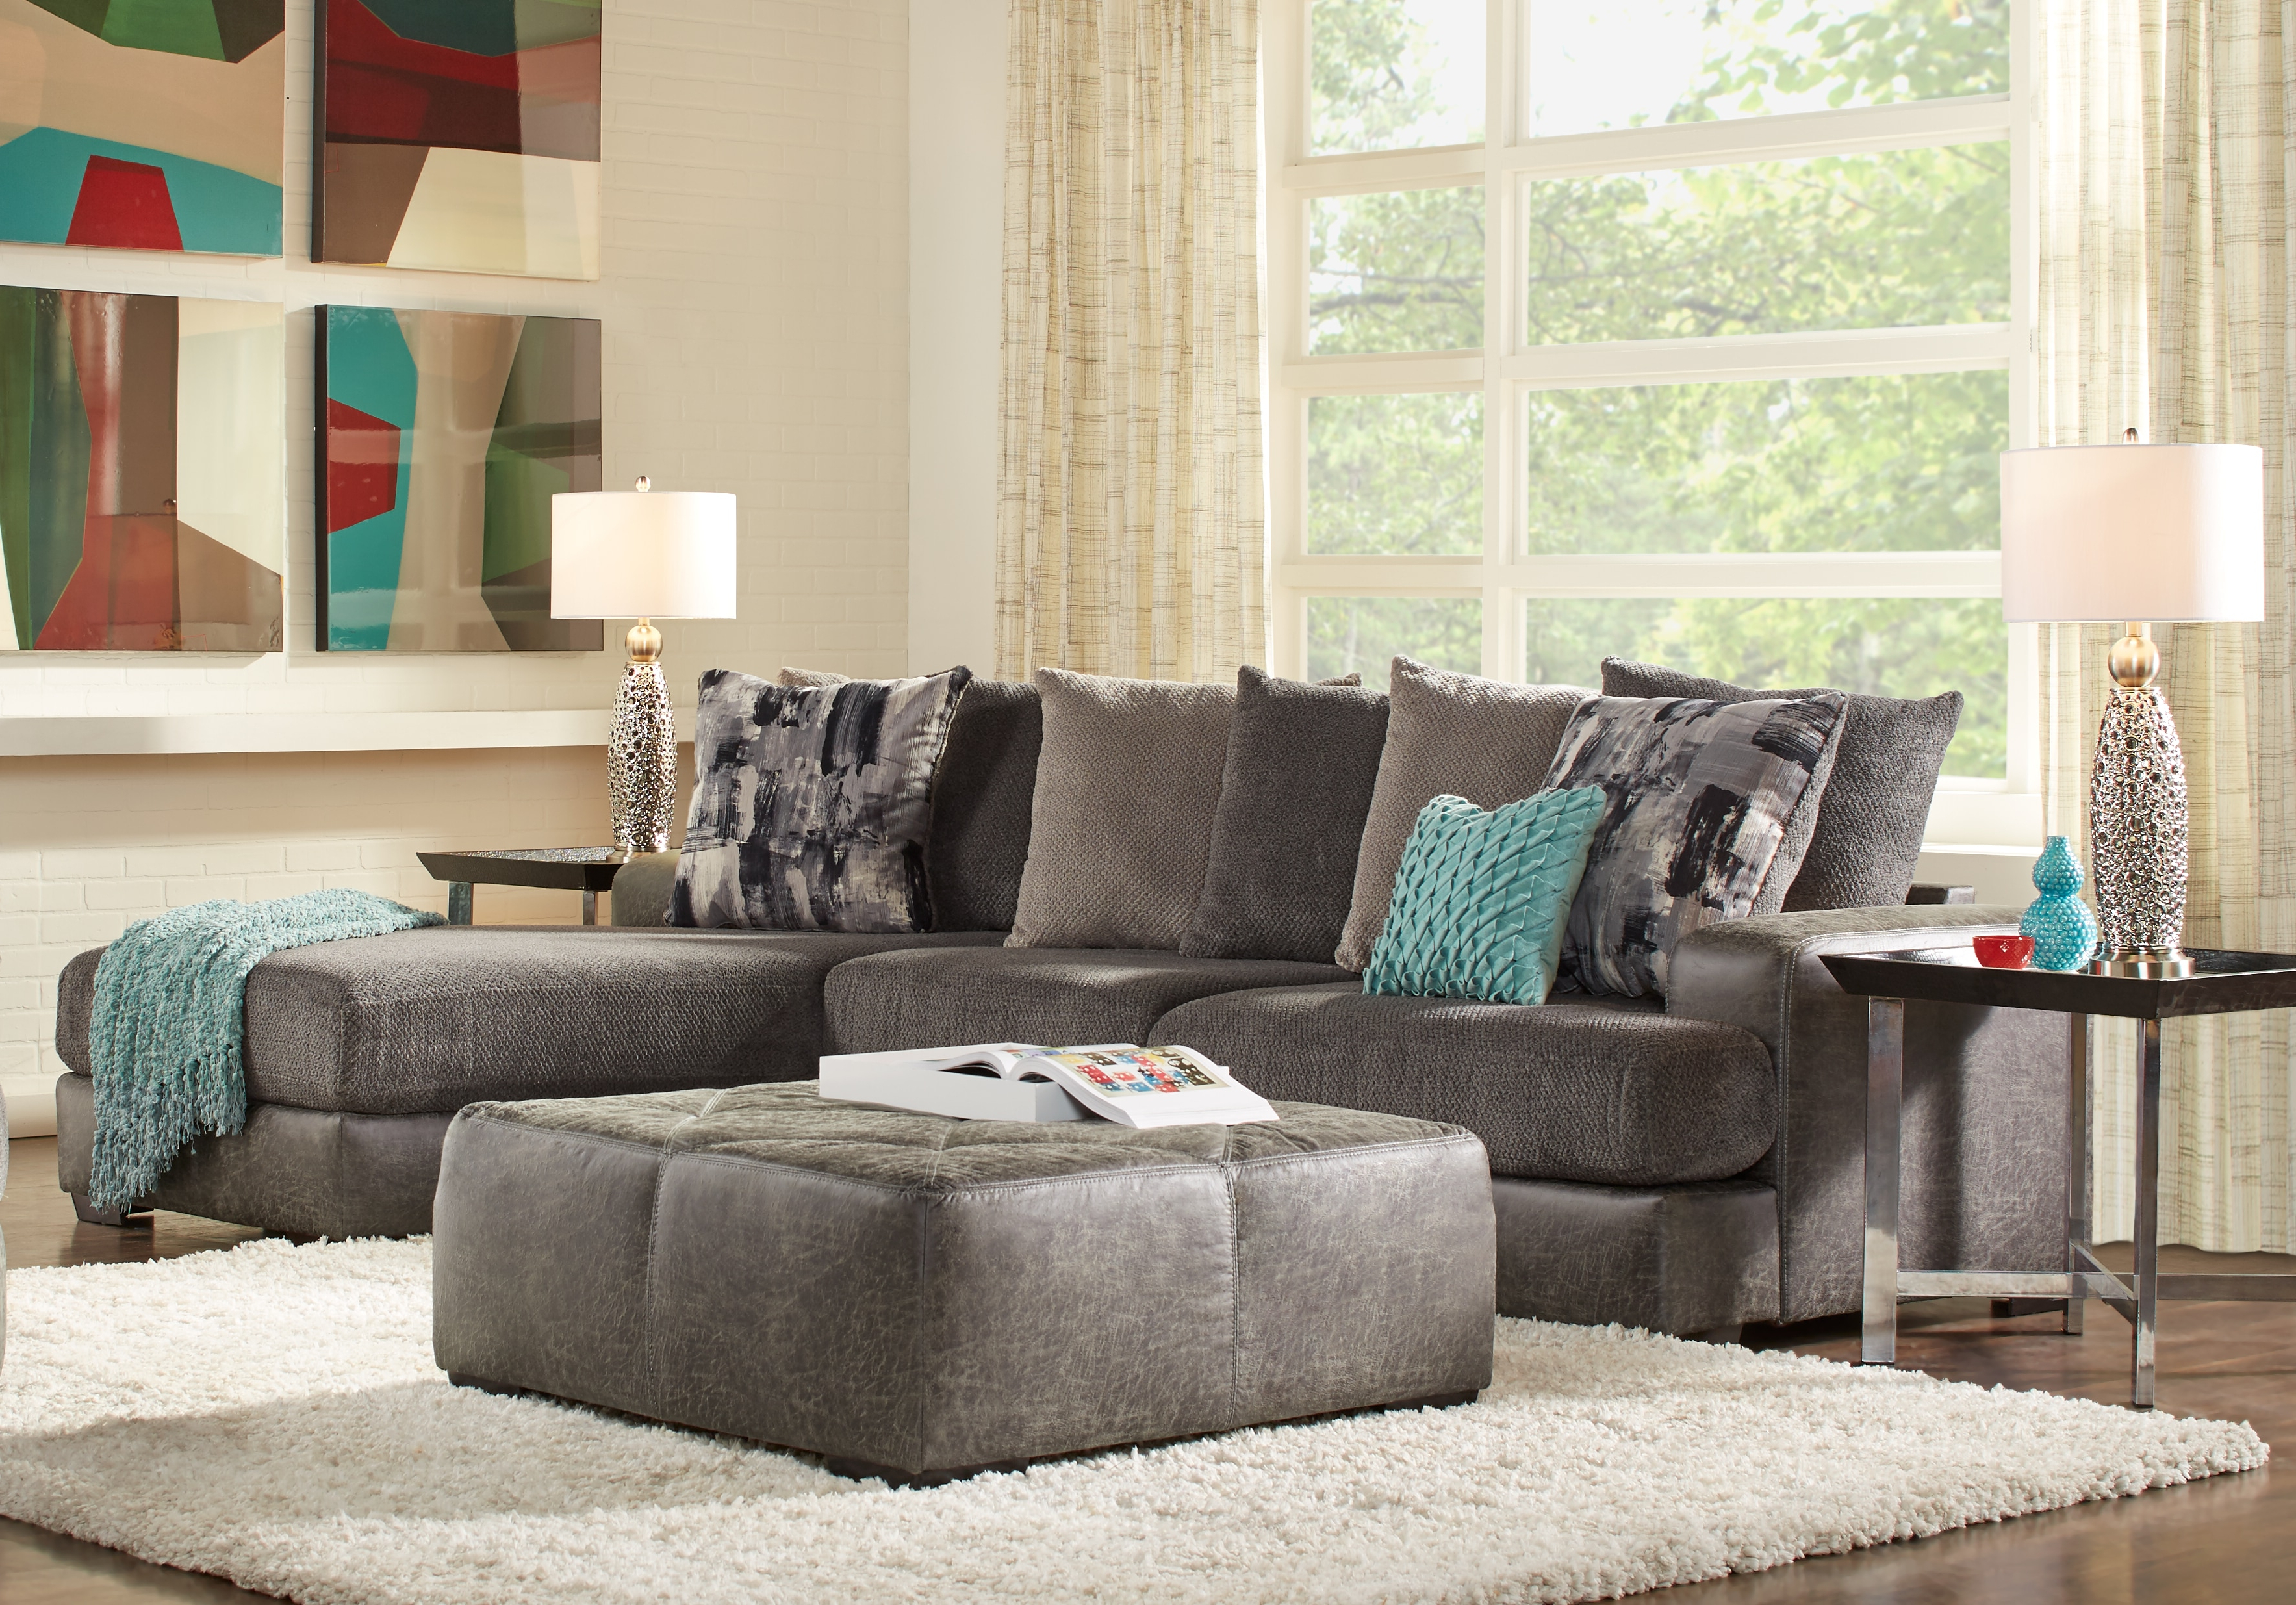 Foster Square Graphite 2 Pc Sectional – Living Room Sets (gray) Within Newest Mcdade Graphite Sofa Chairs (View 6 of 20)